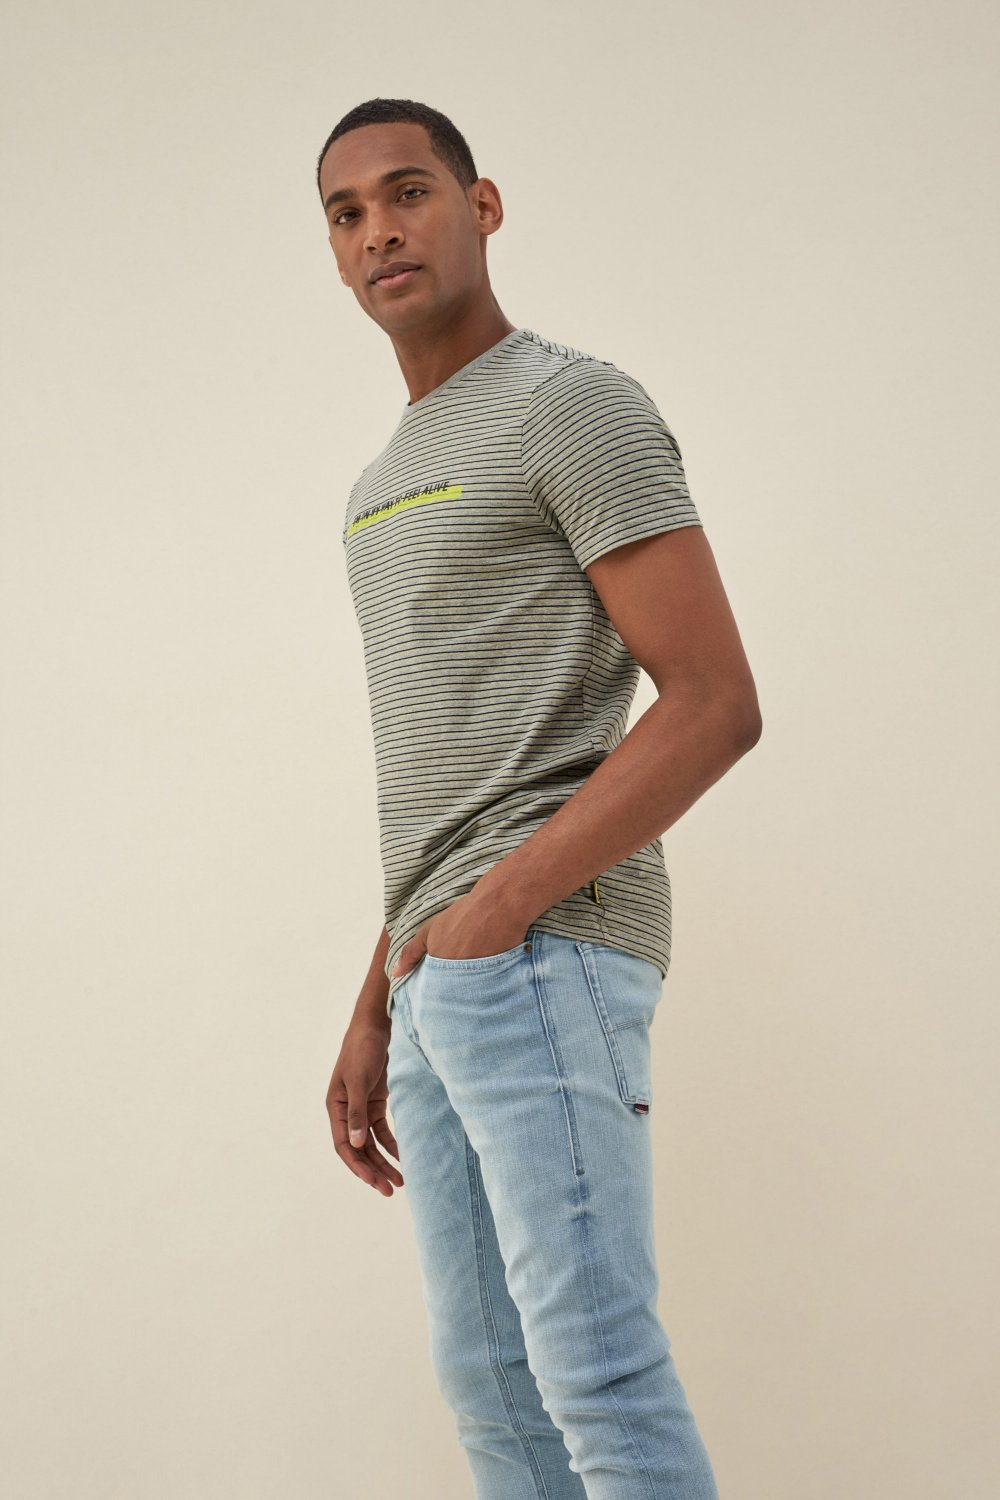 Dry denim2GO t-shirt - Salsa